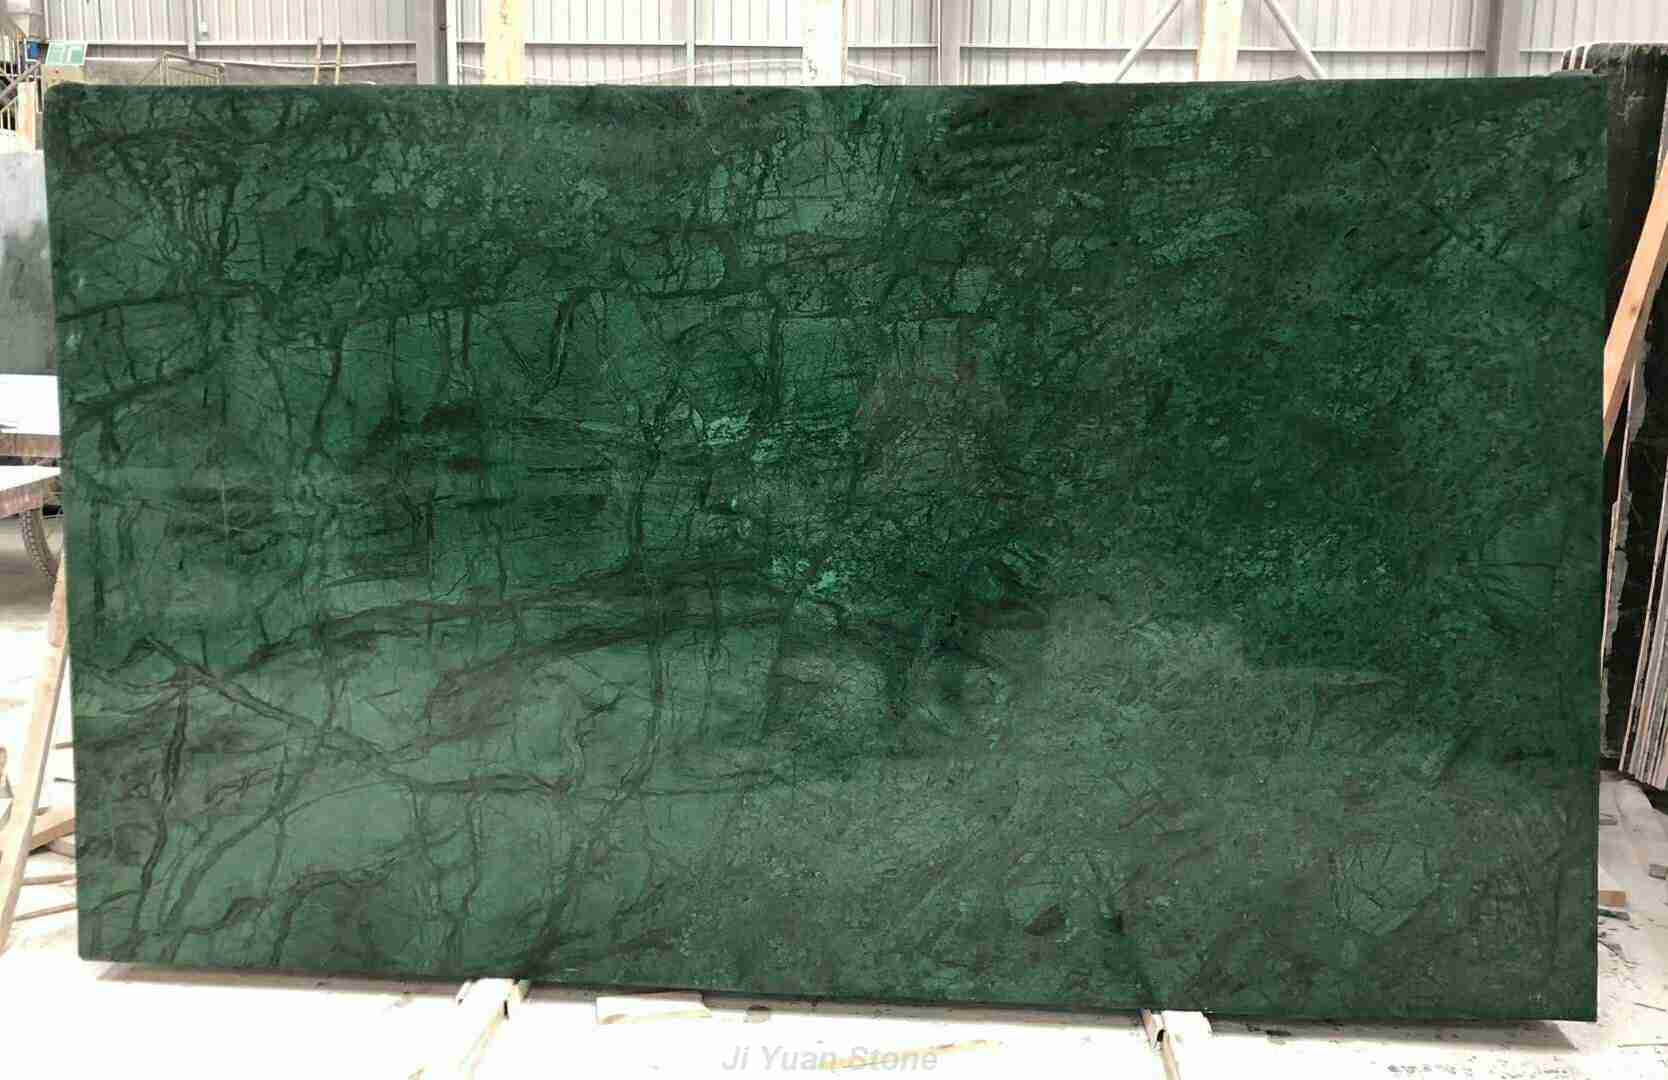 blue and green marble,green marble kitchen countertops,dark green granite countertops,green forest marble,jade green marble,irish green marble,pale green stone